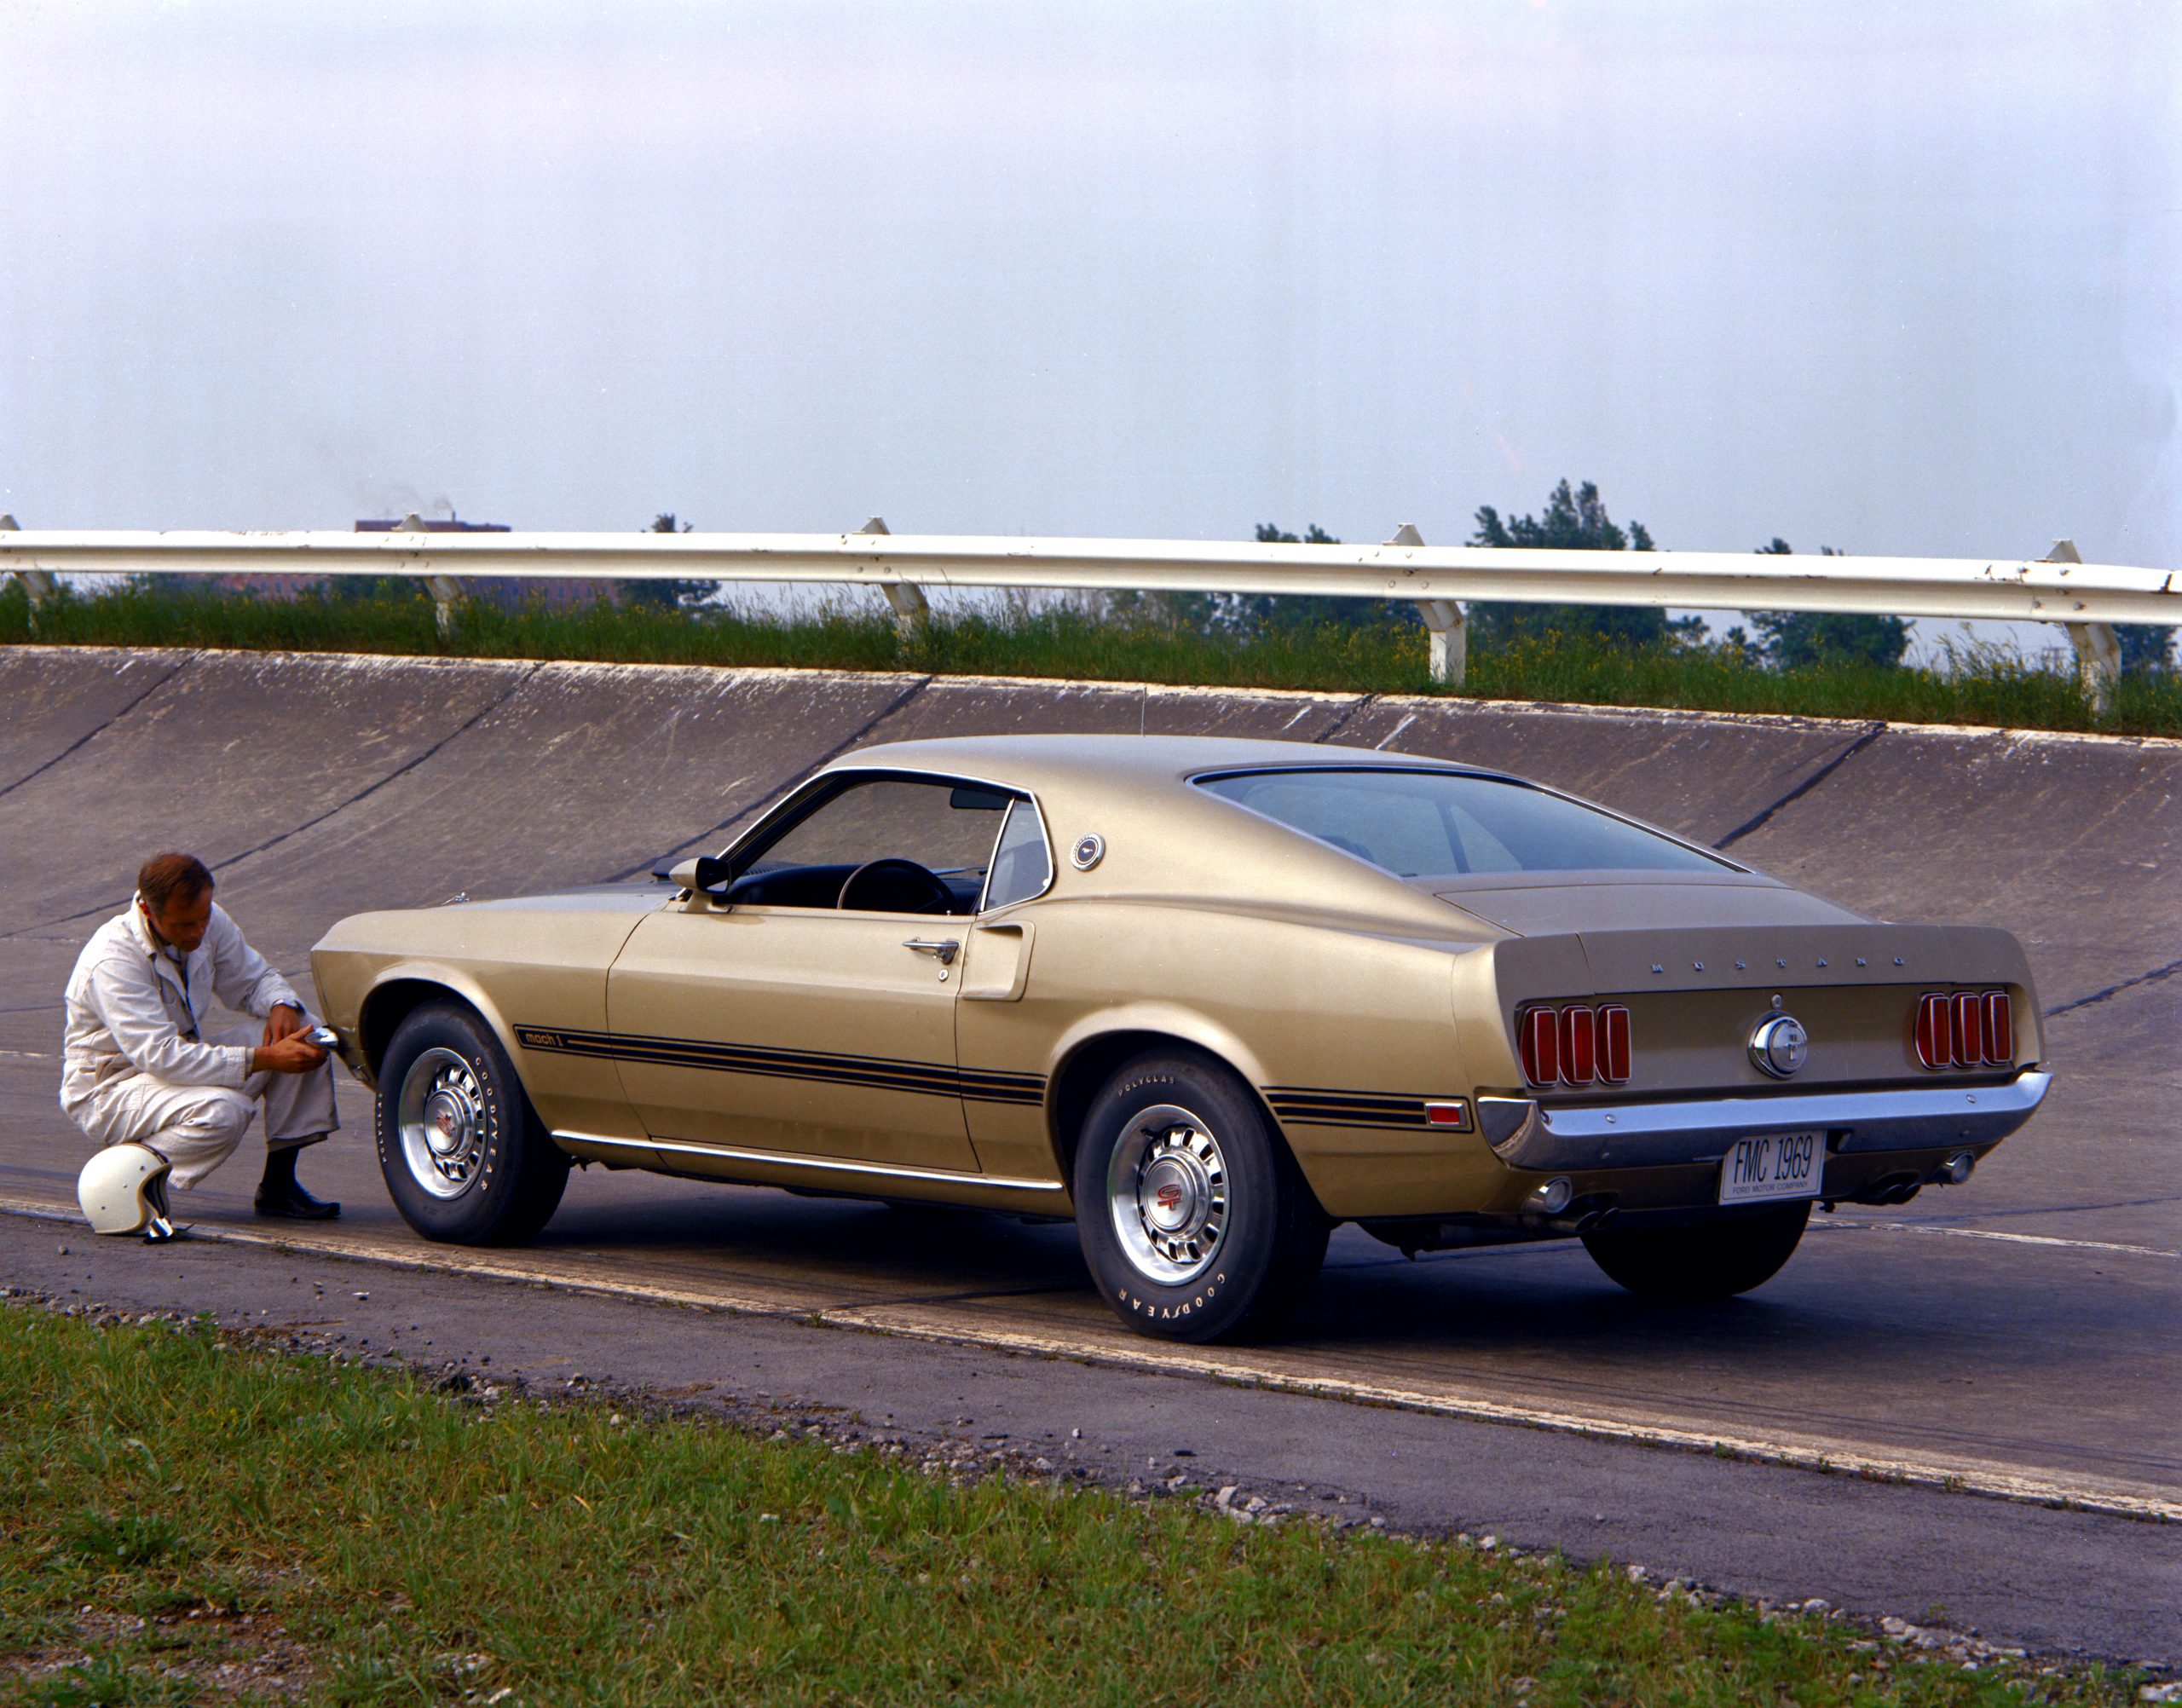 1969 Ford Mustang Mach 1 Fastback Rear Three-Quarter At Track